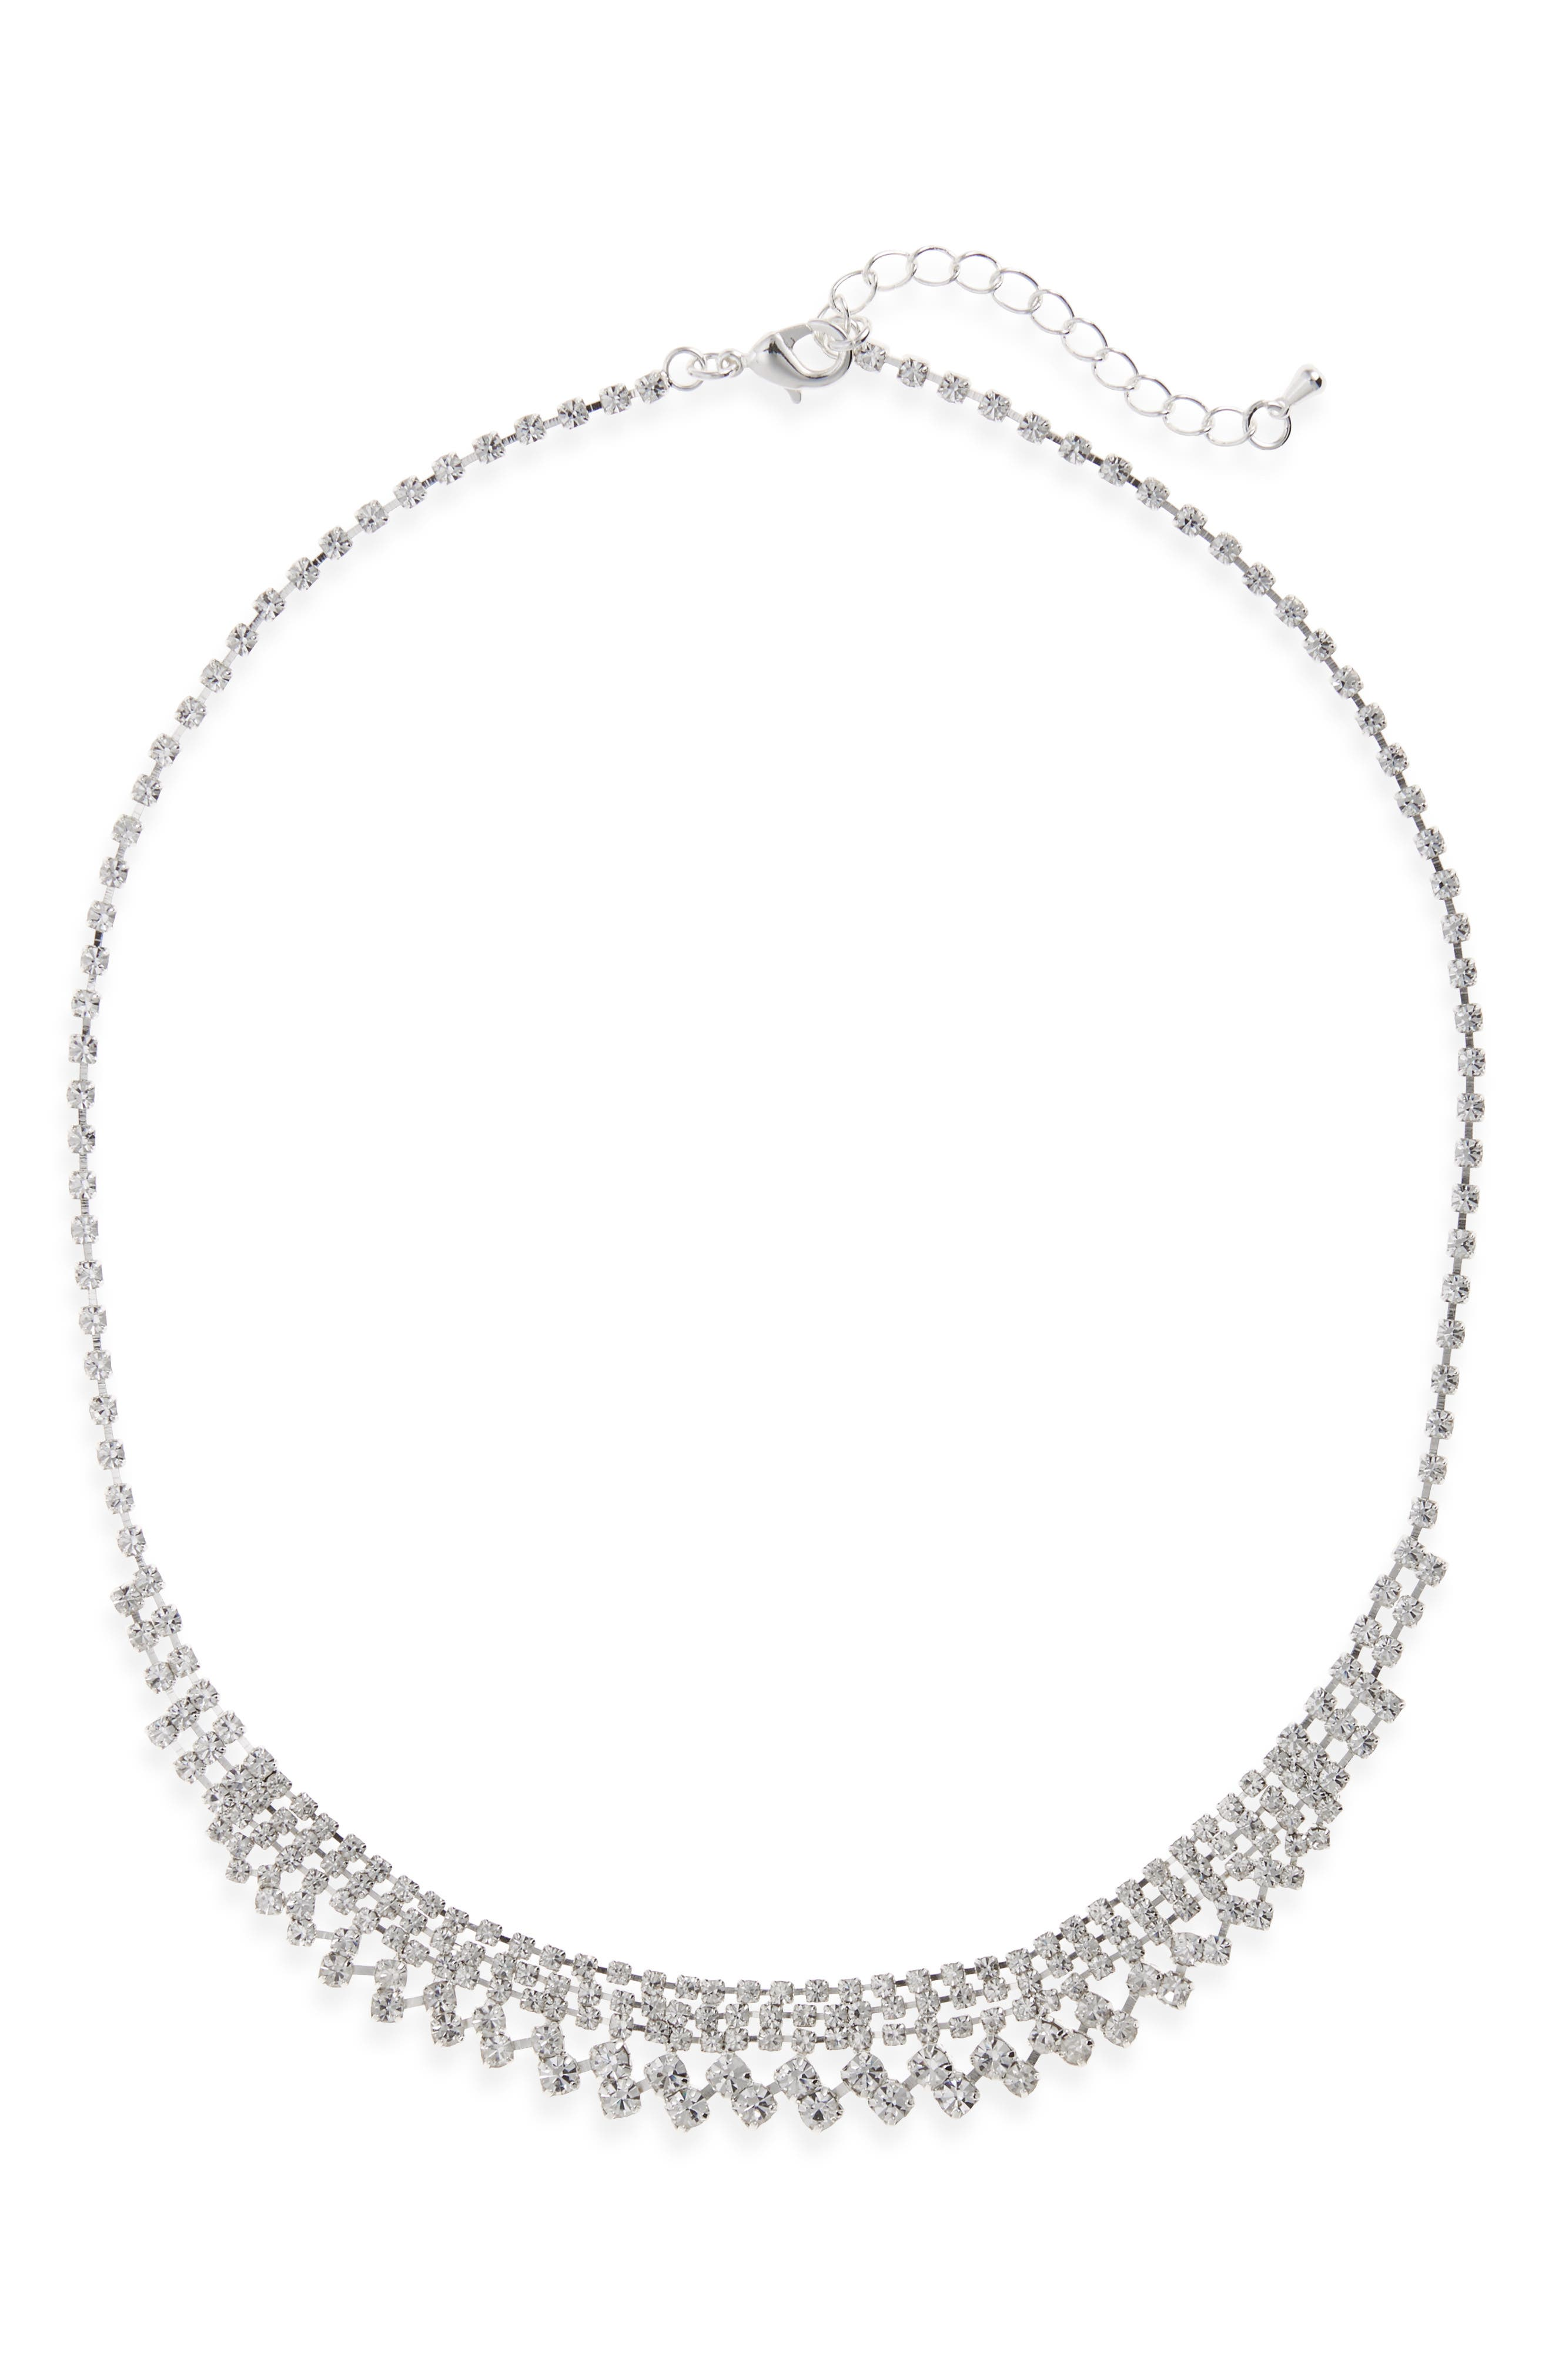 Crystal Frontal Necklace,                             Main thumbnail 1, color,                             Silver